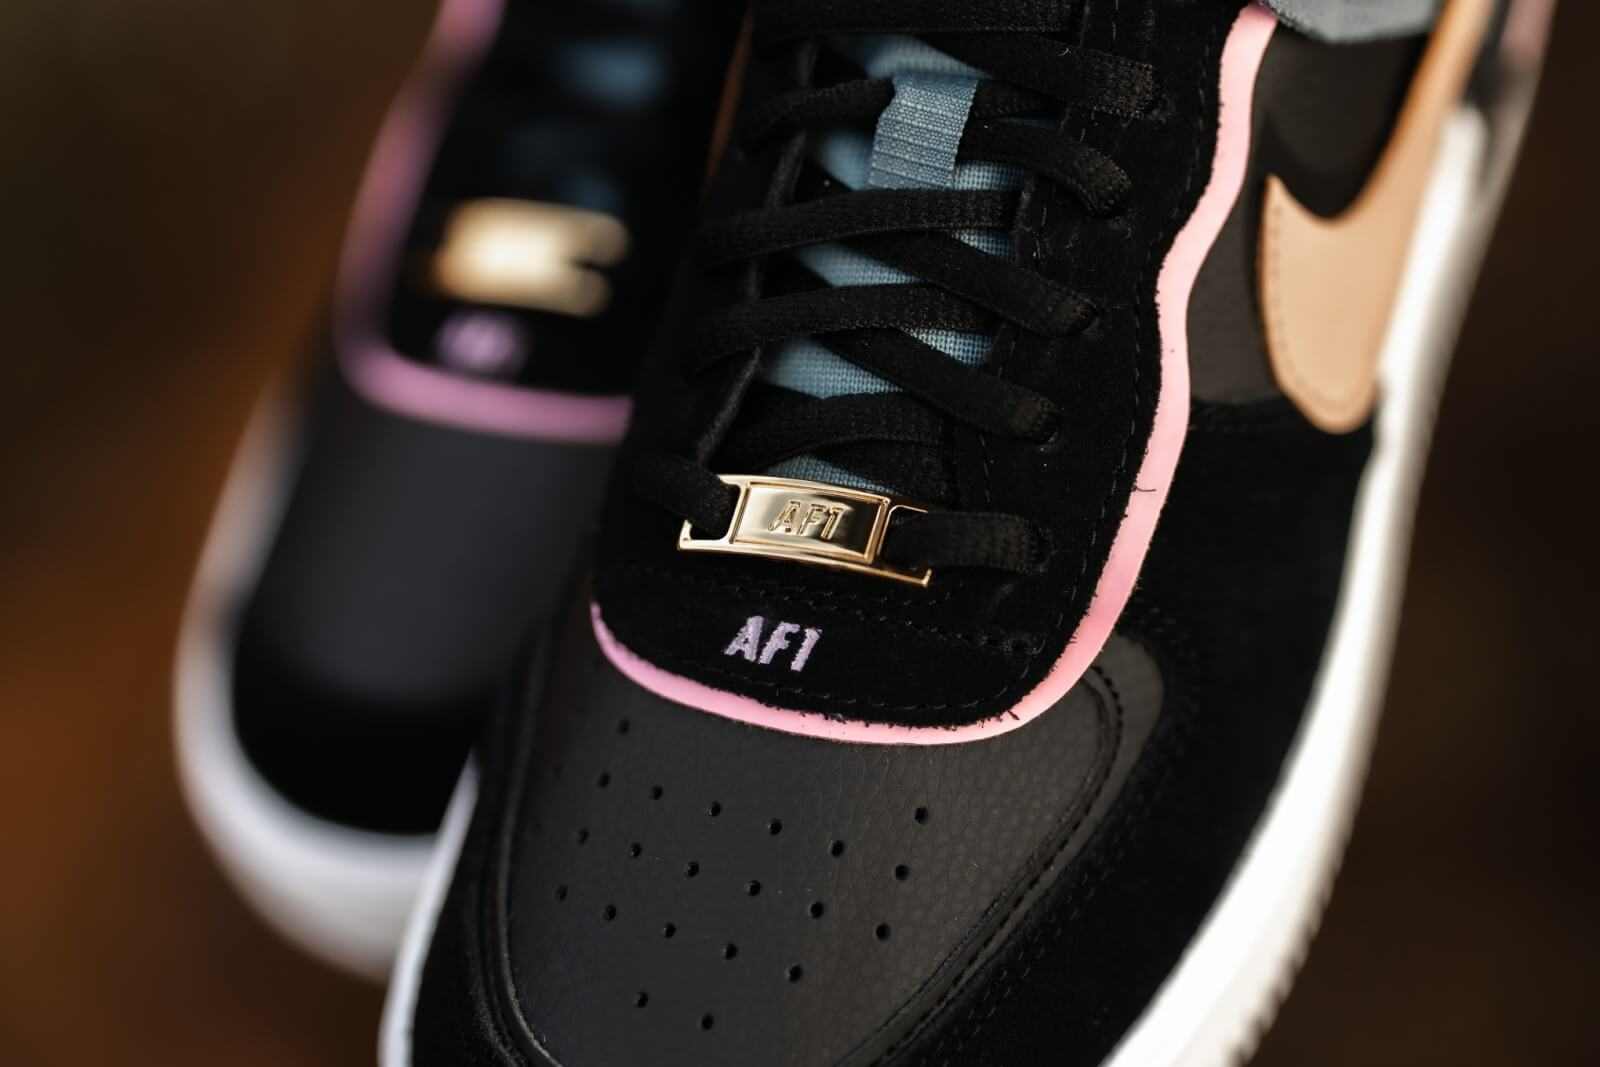 Nike Women S Air Force 1 Shadow Rtl Black Metallic Red Bronze Light Arctic Pink Cu5315 001 1,233 items on sale from $29. nike women s air force 1 shadow rtl black metallic red bronze light arctic pink